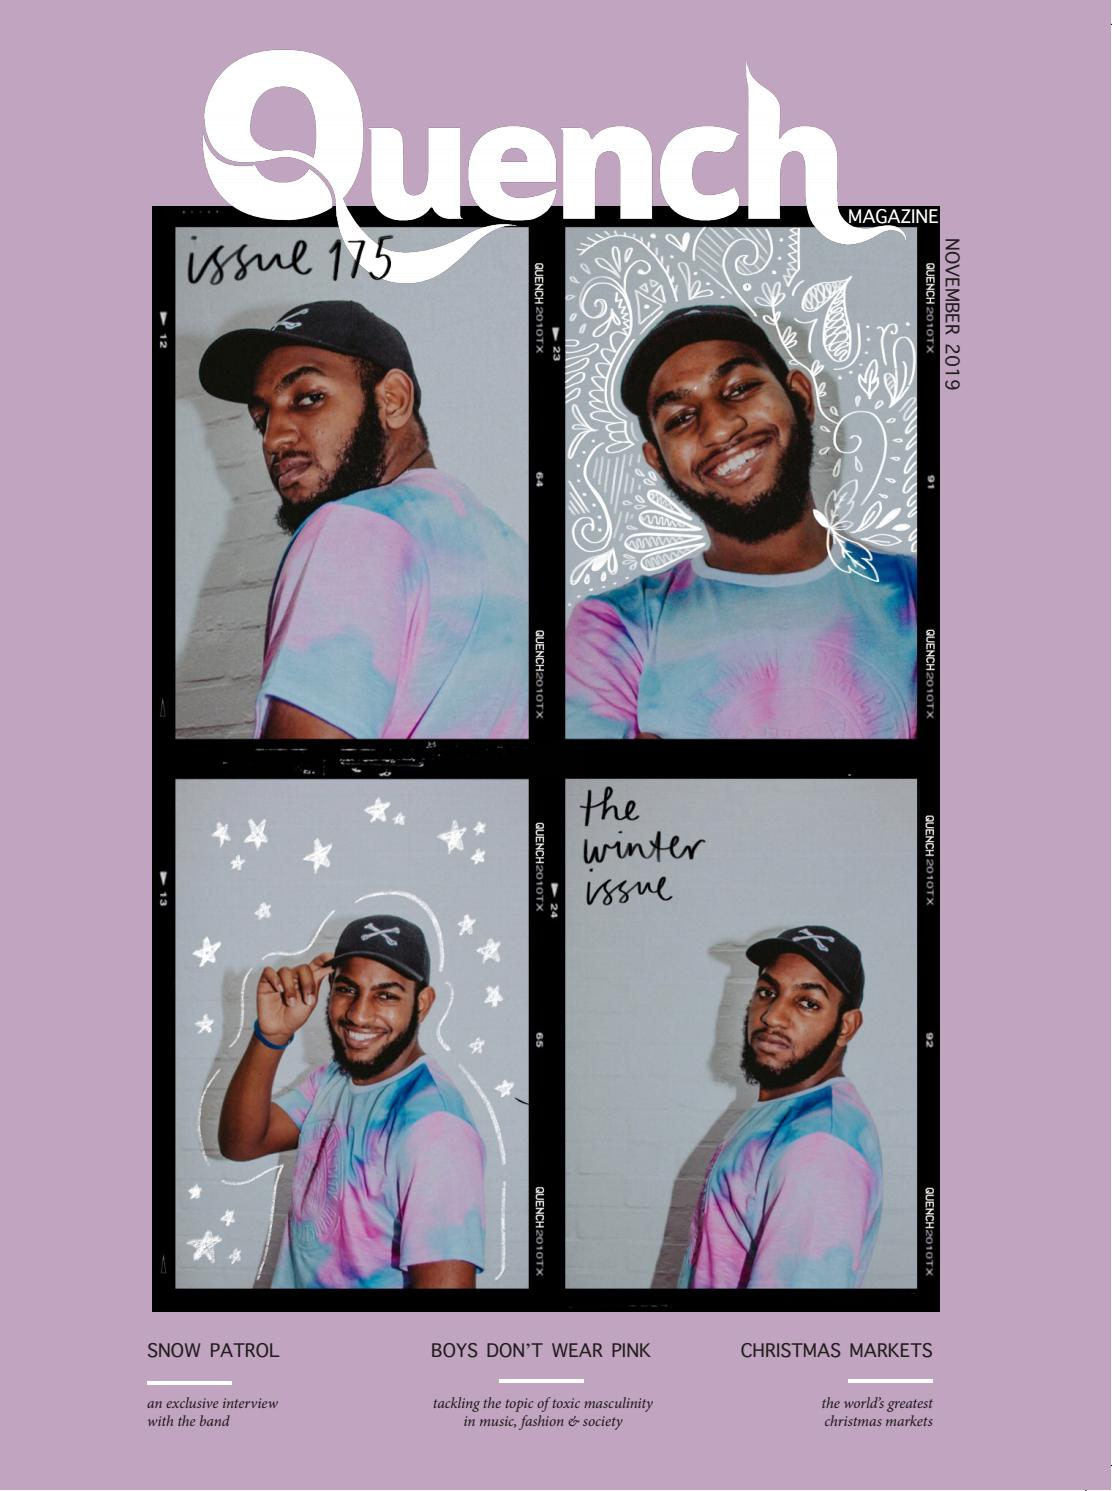 Quench Magazine Issue 175 November 2019 By Cardiff Student Media Issuu